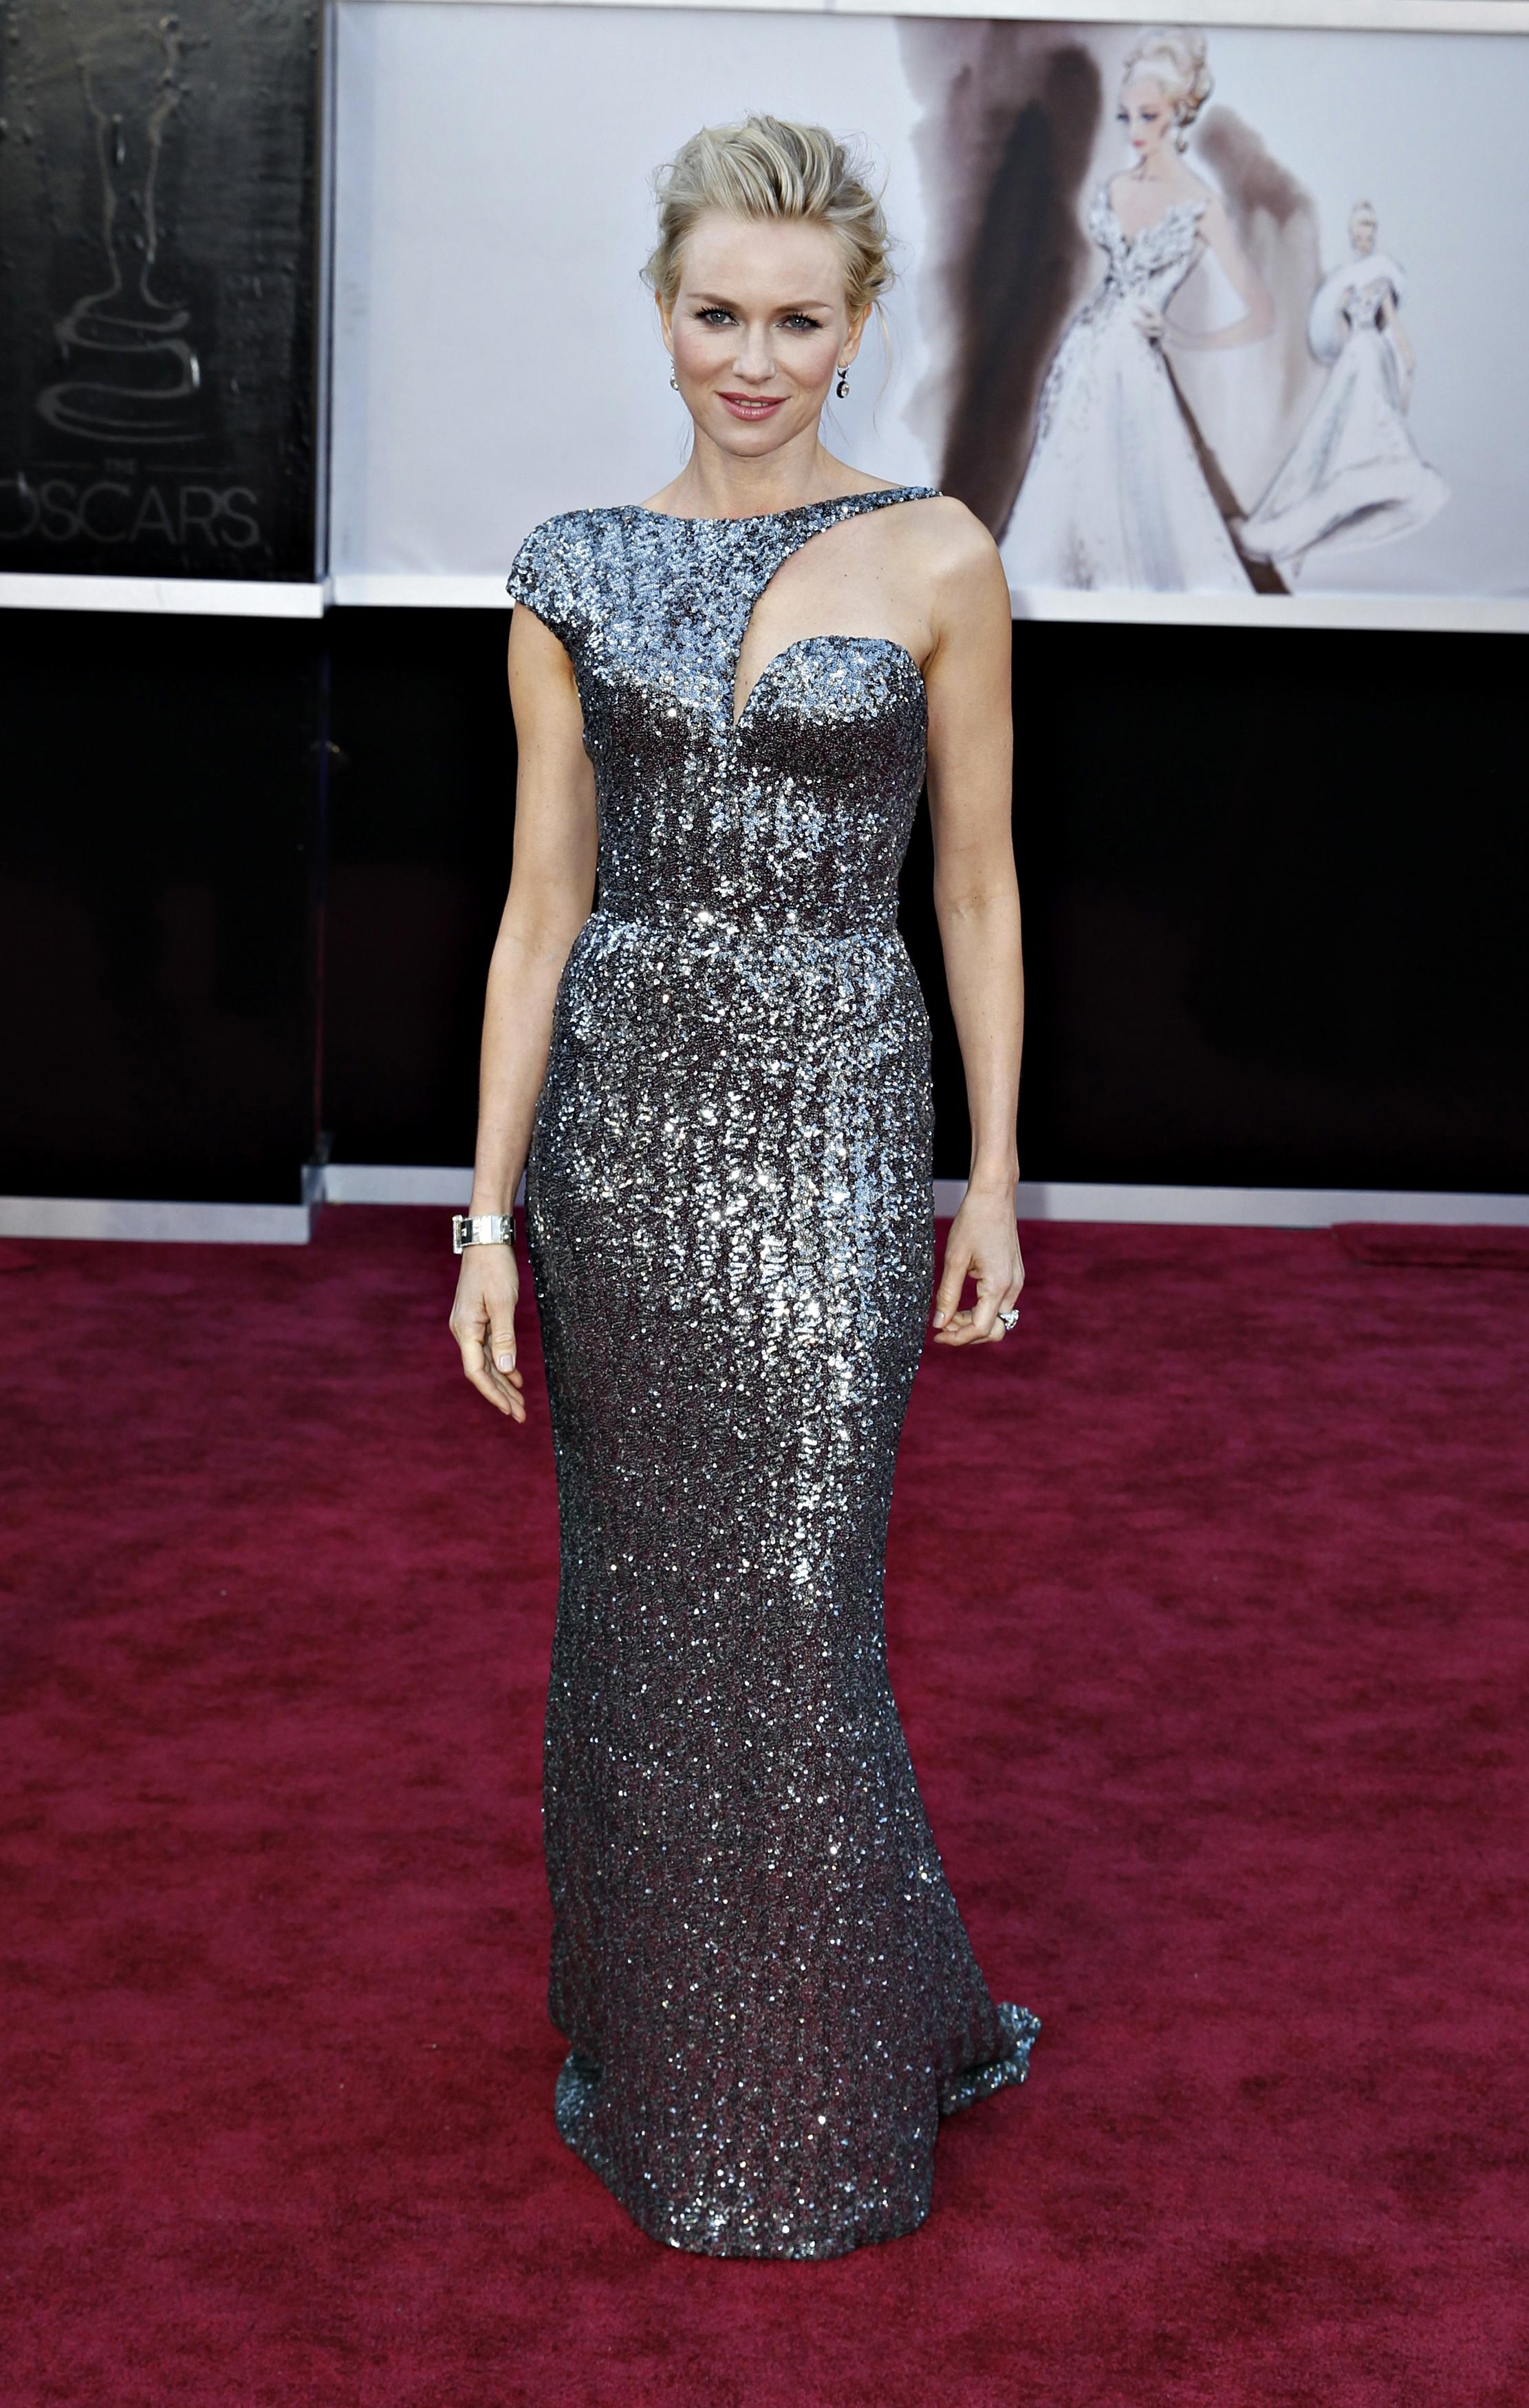 Oscars 2013 Red Carpet Best And Worst Dressed Celebrities